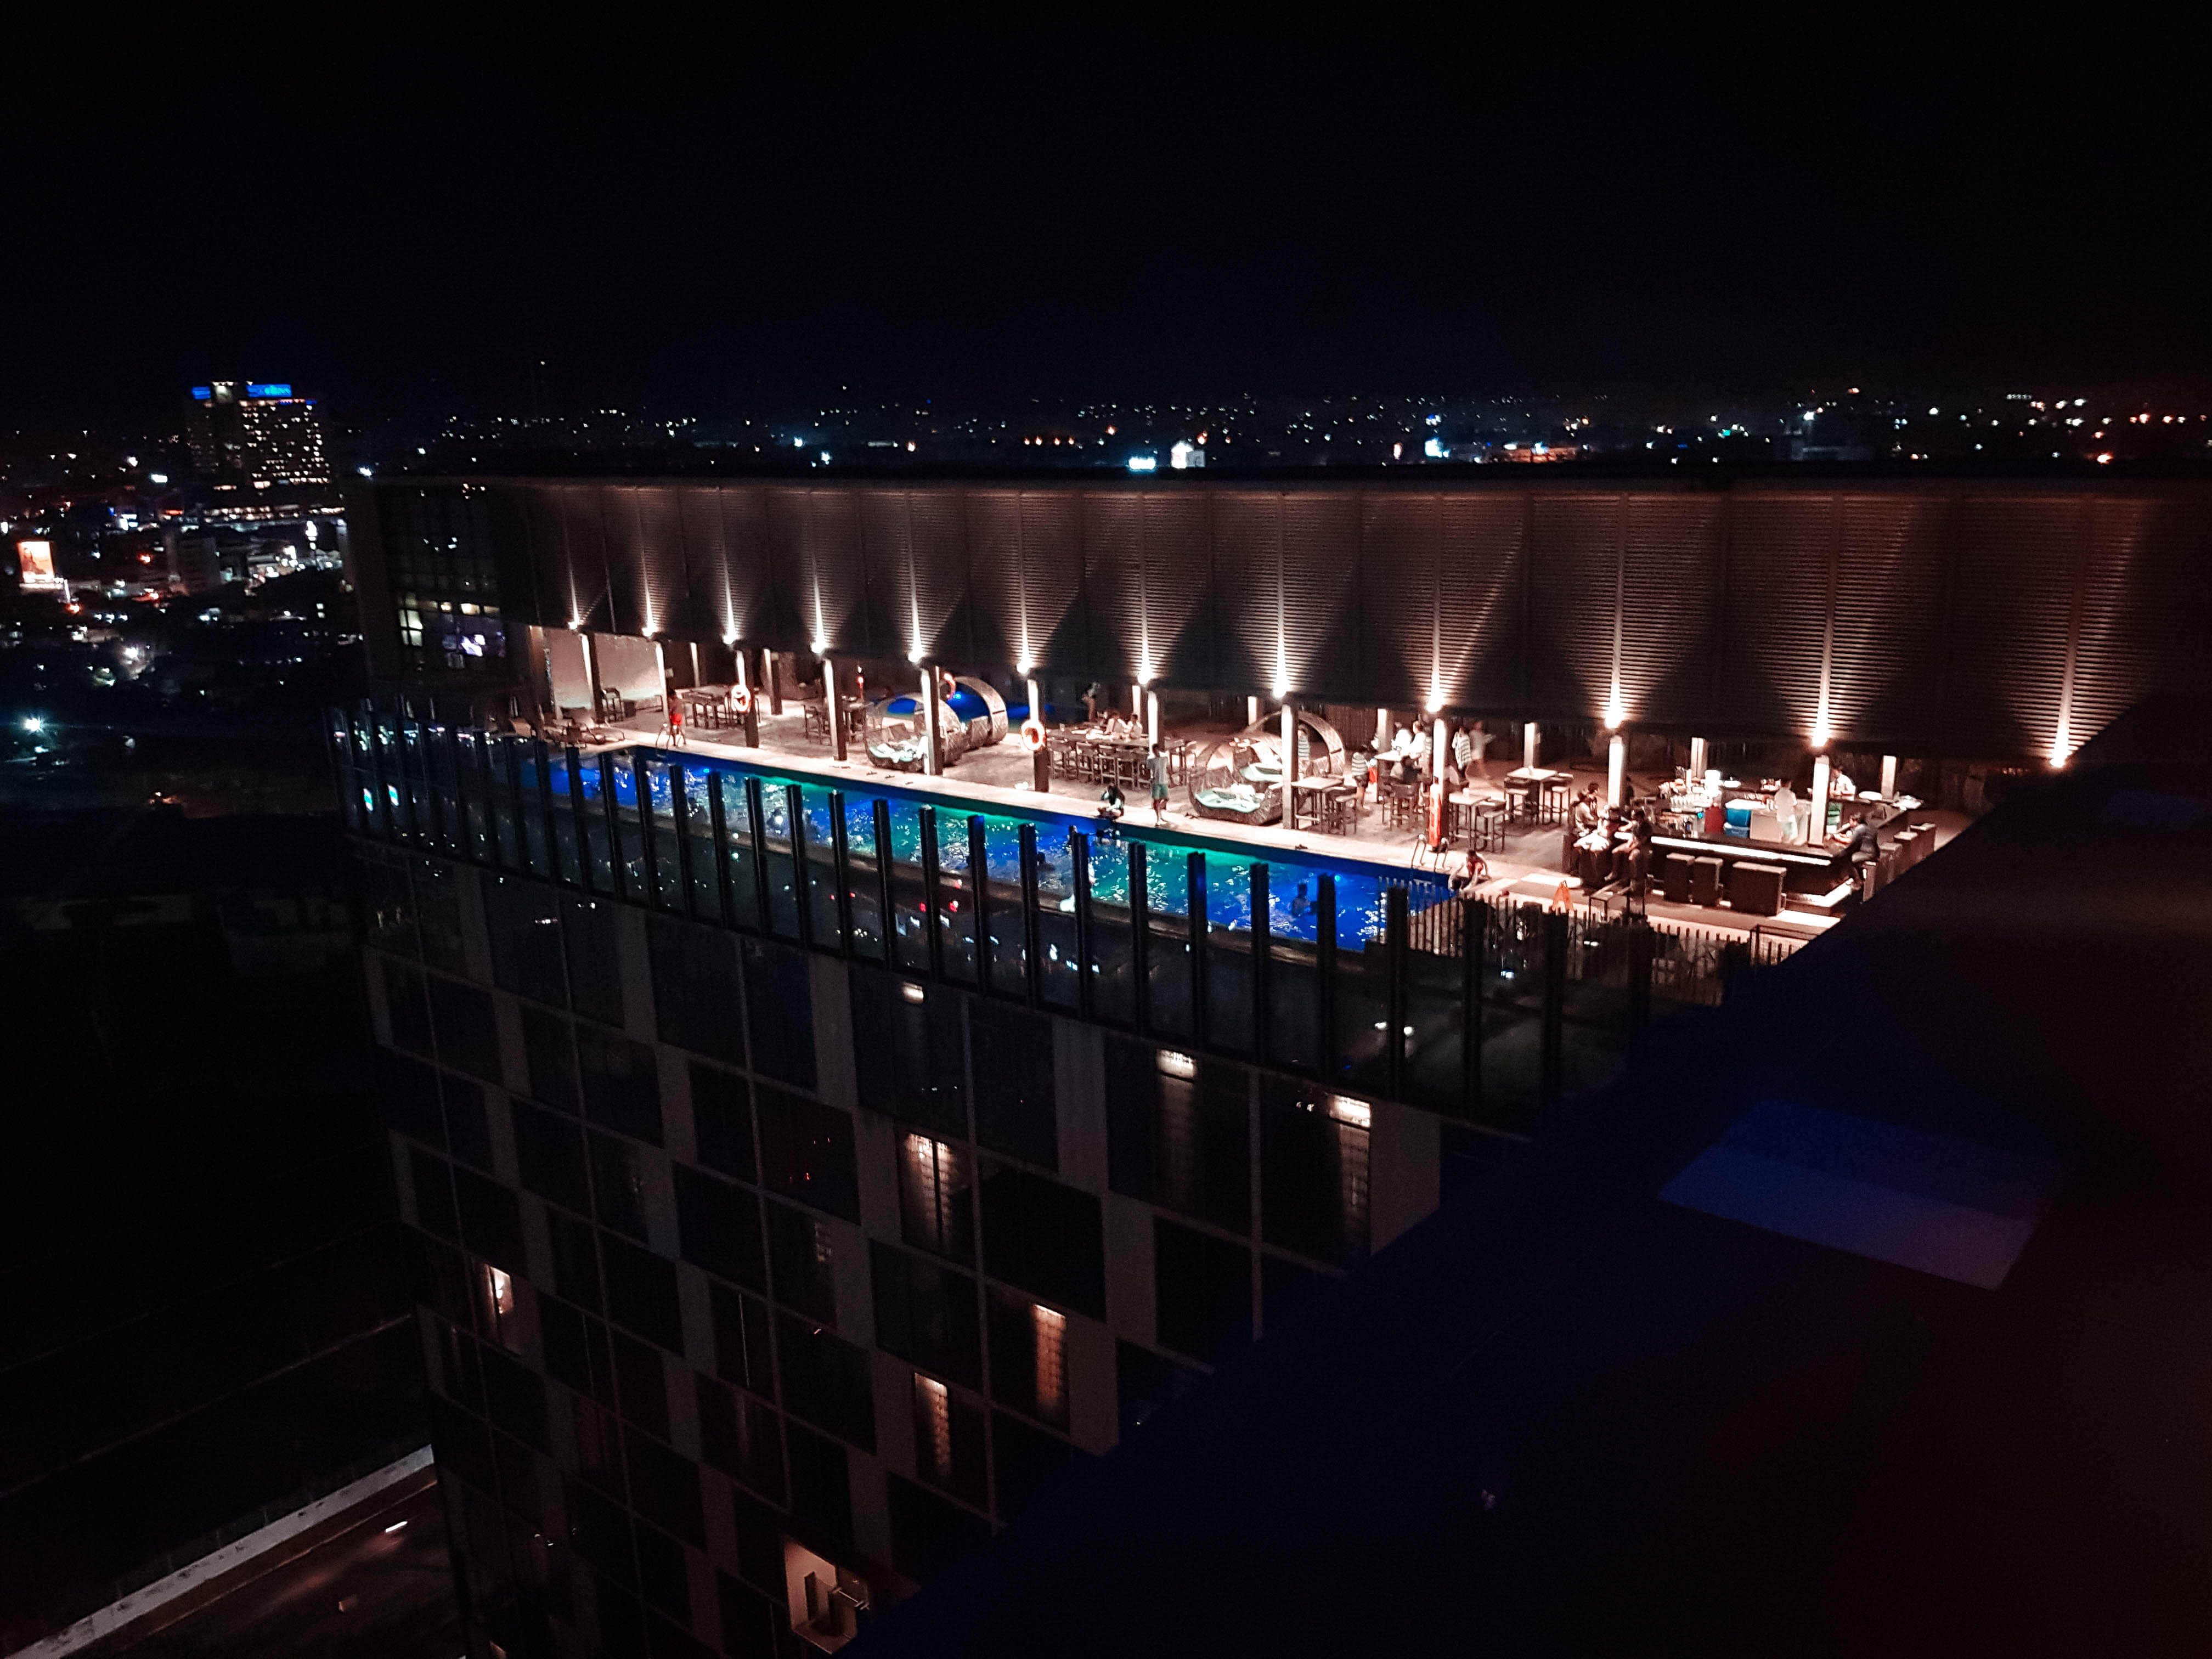 rooftop view of the rooftop pool